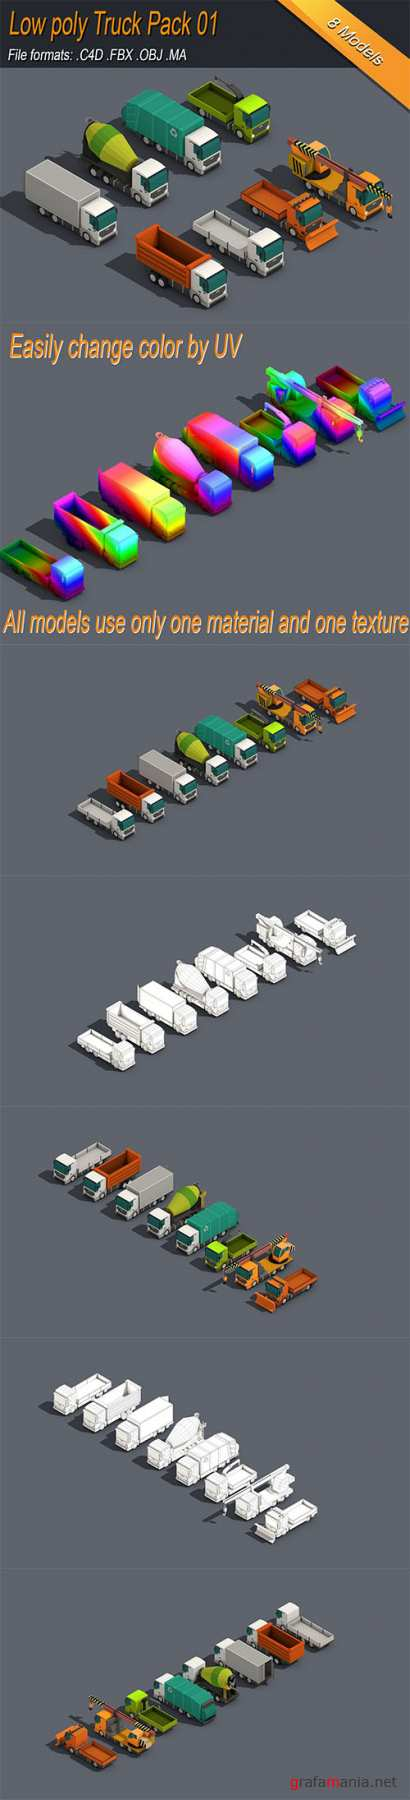 Low Poly Truck Pack 01 Isometric Low-poly 3D model